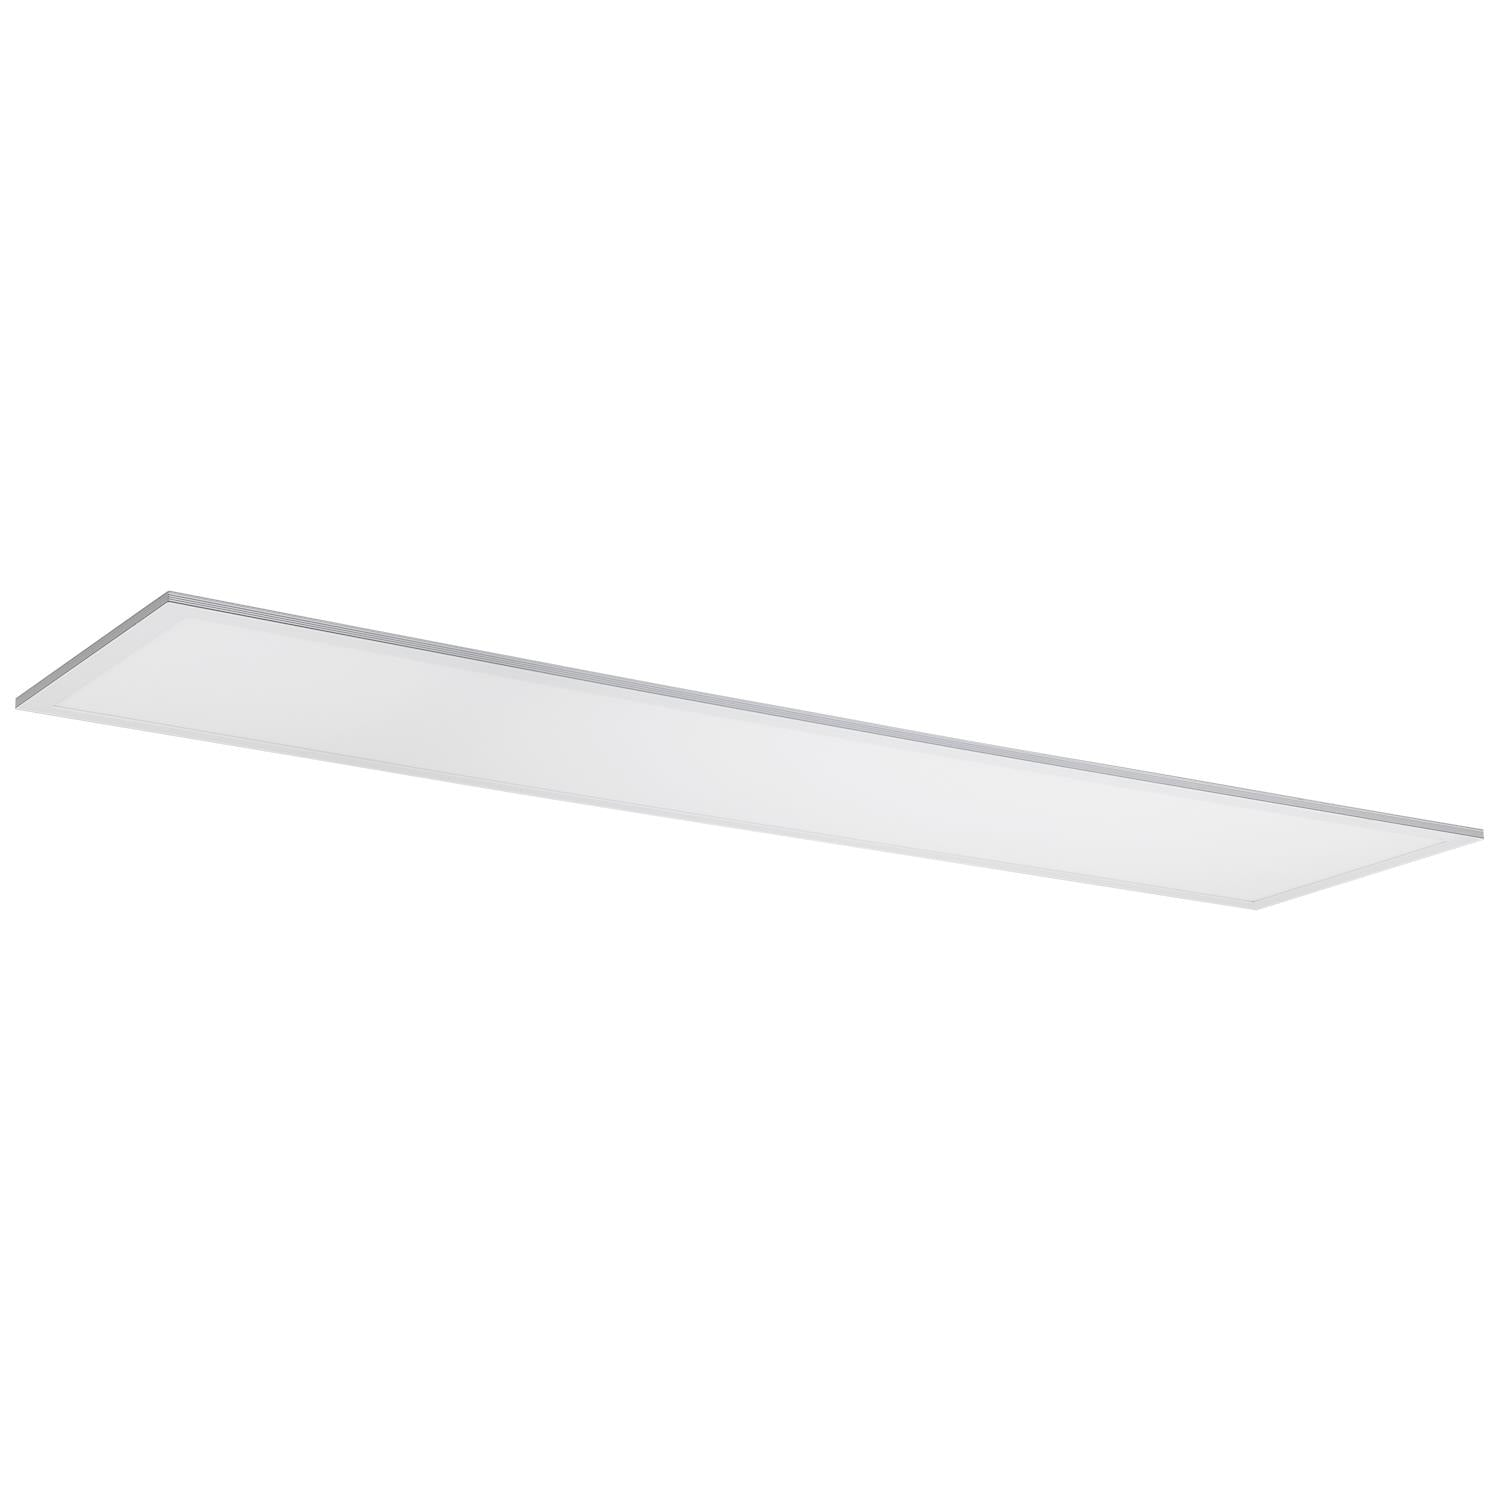 SUNLITE 85170-SU 40w 100-277v LED Light Fixture Flat Panel (1X4) - 3000K